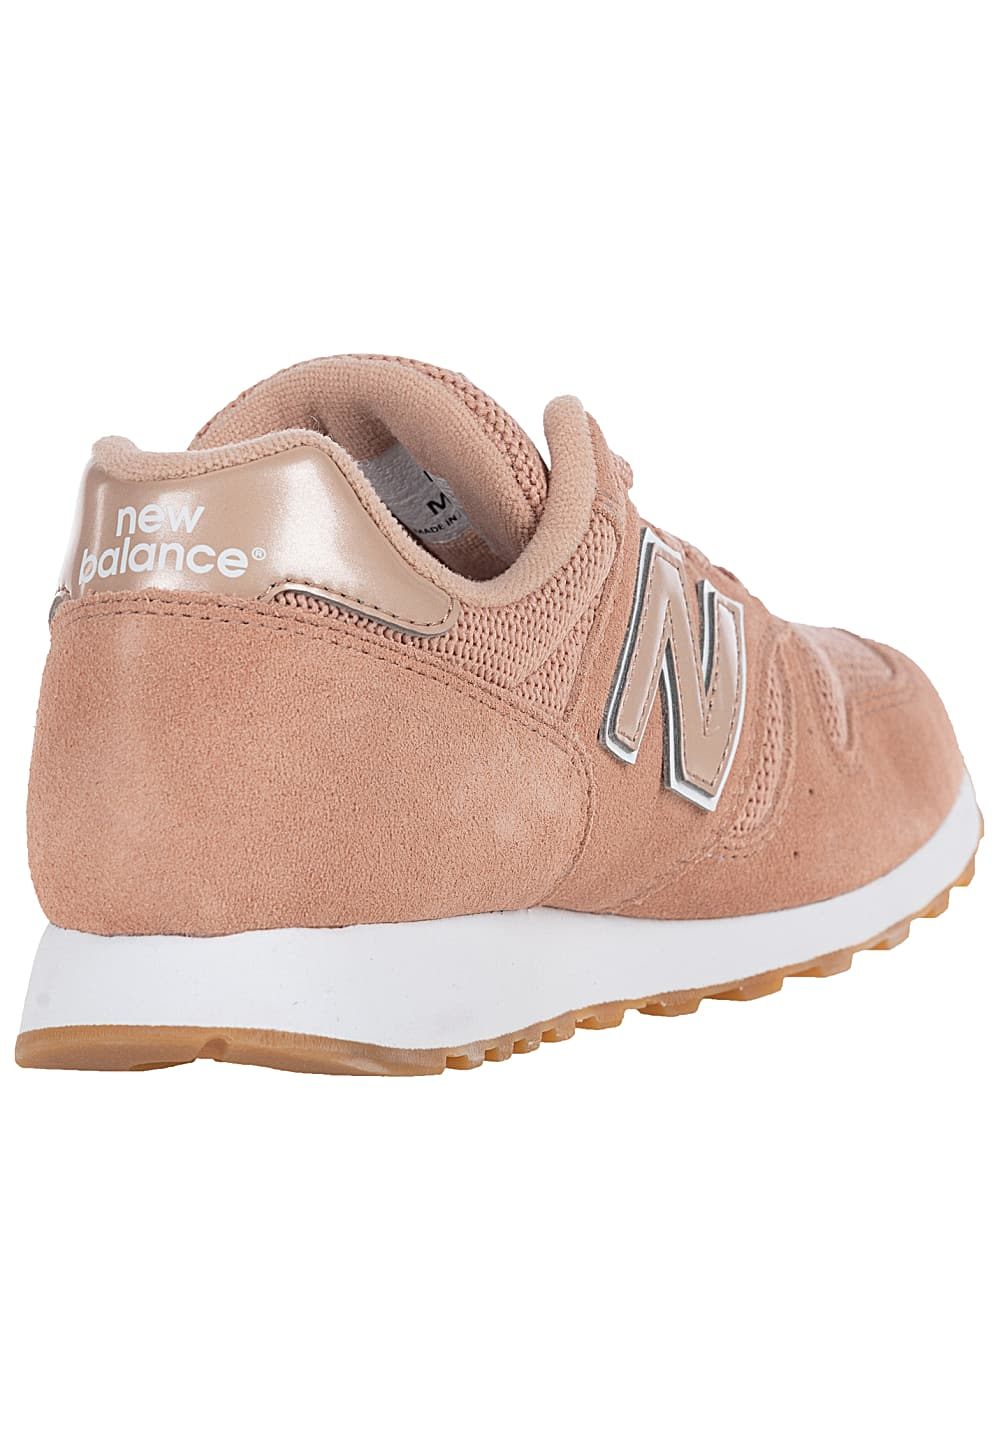 timeless design 60bc2 6857f NEW BALANCE WL373 B - Sneakers for Women - Pink